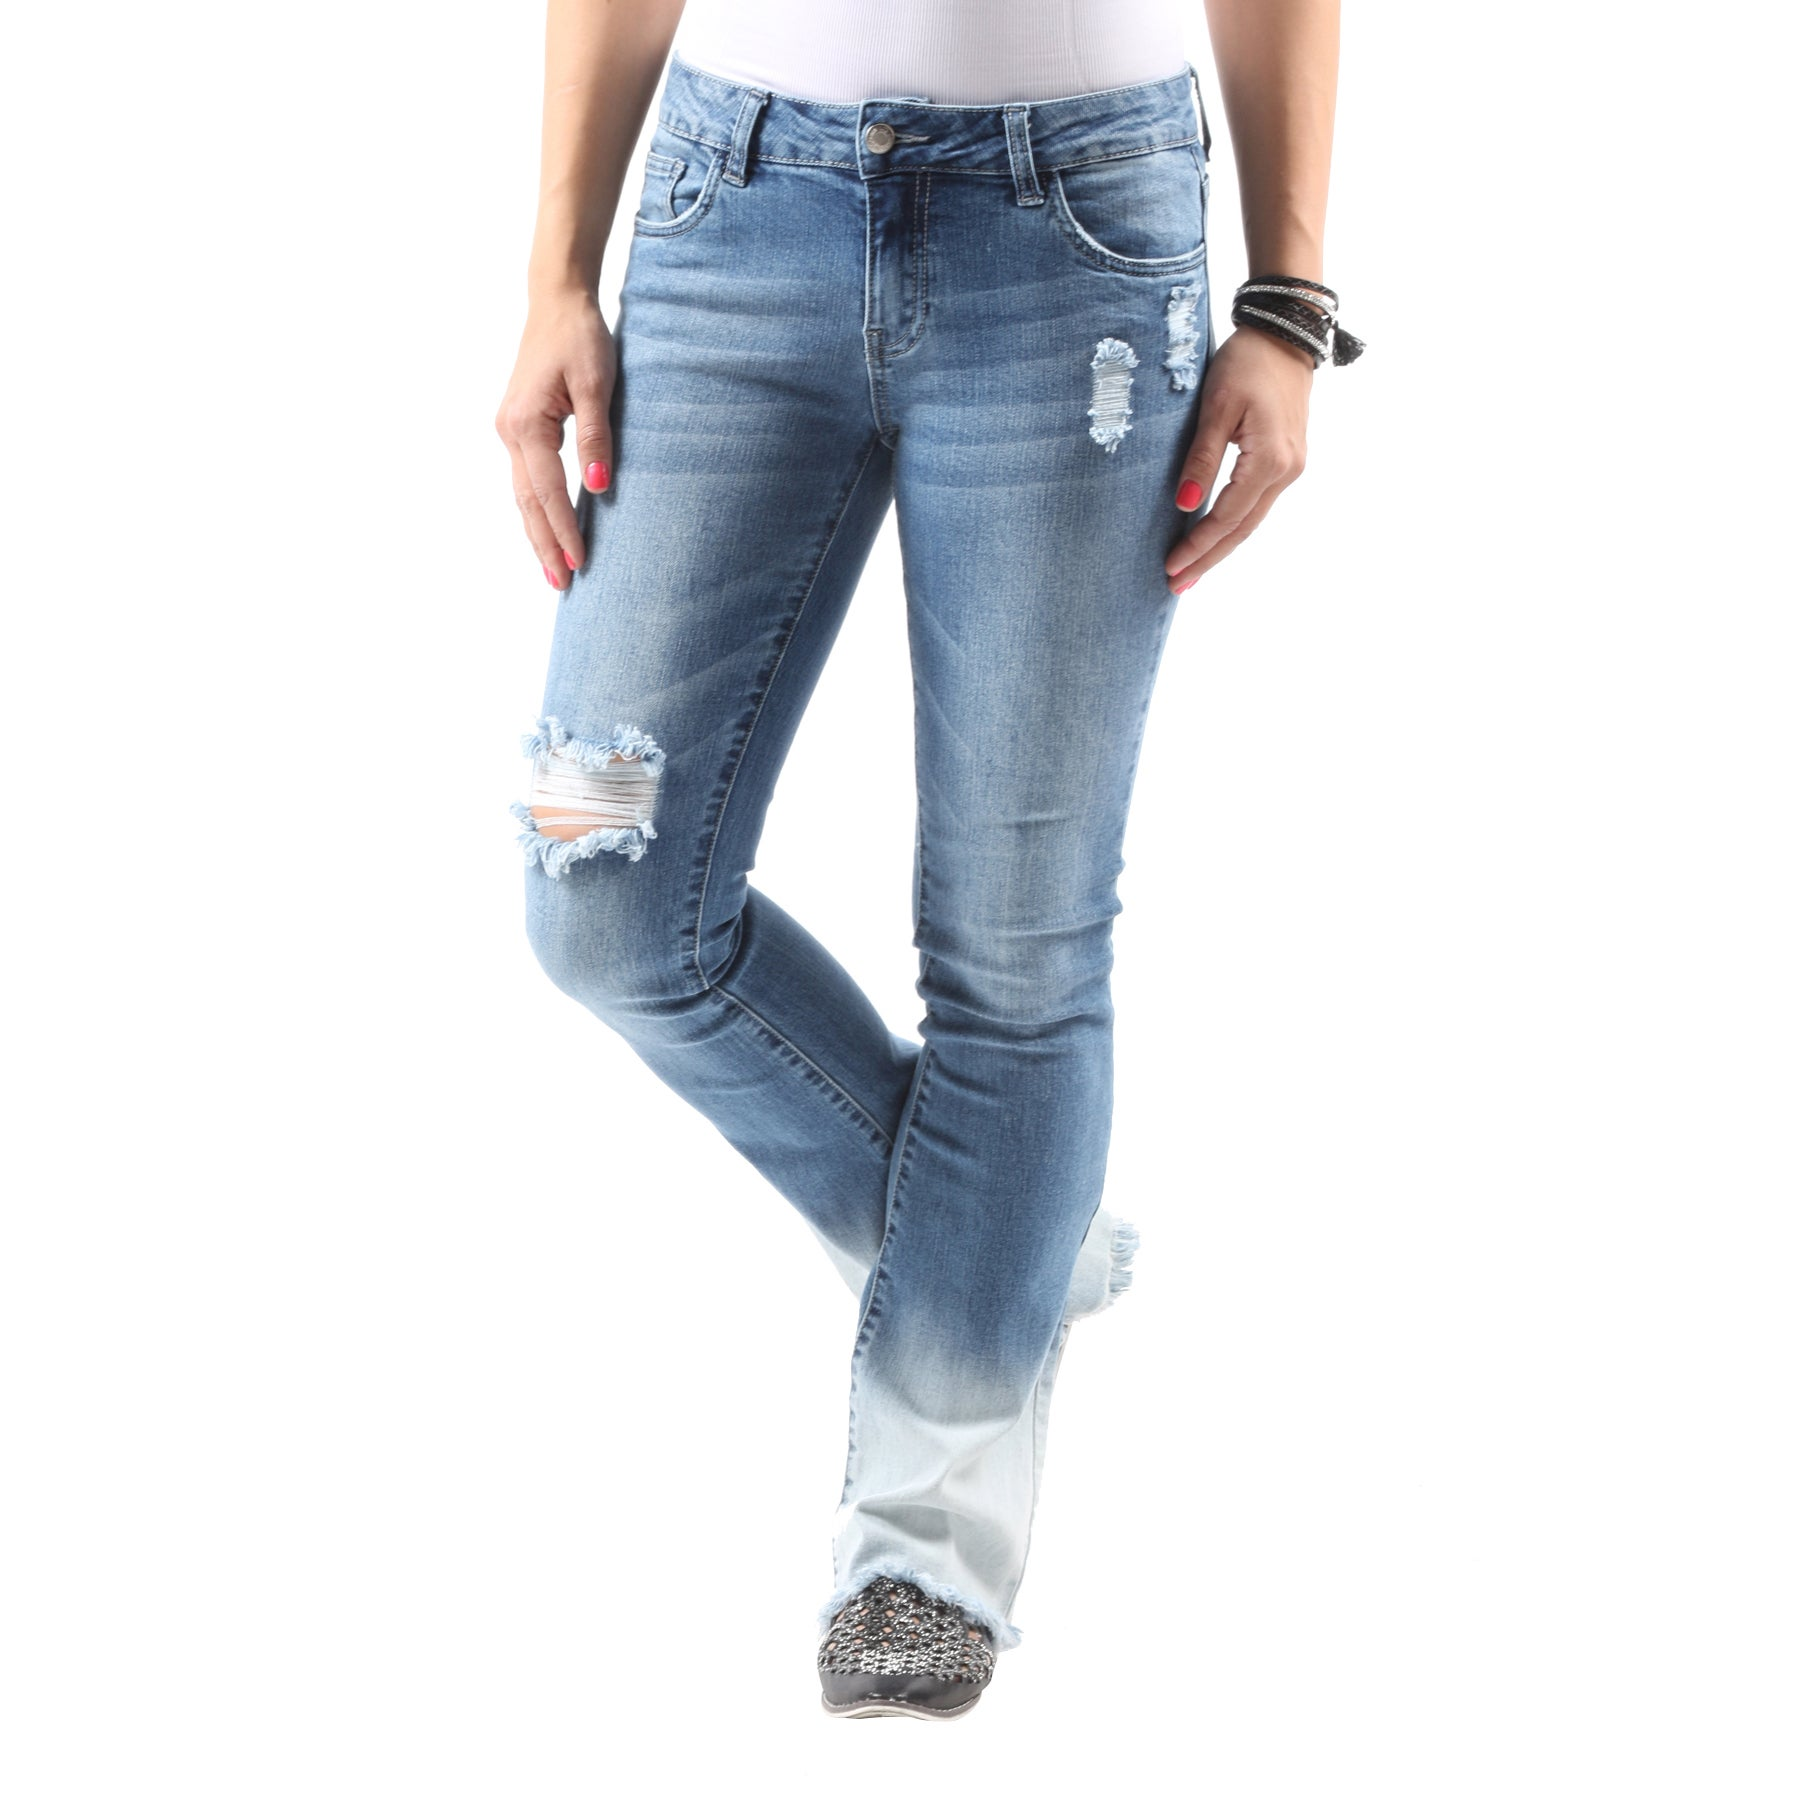 6a68e66fa6e Shop Hadari Women s Casual Stylish Distressed Ripped Denim Bootcut Jeans -  On Sale - Free Shipping Today - Overstock.com - 13488230